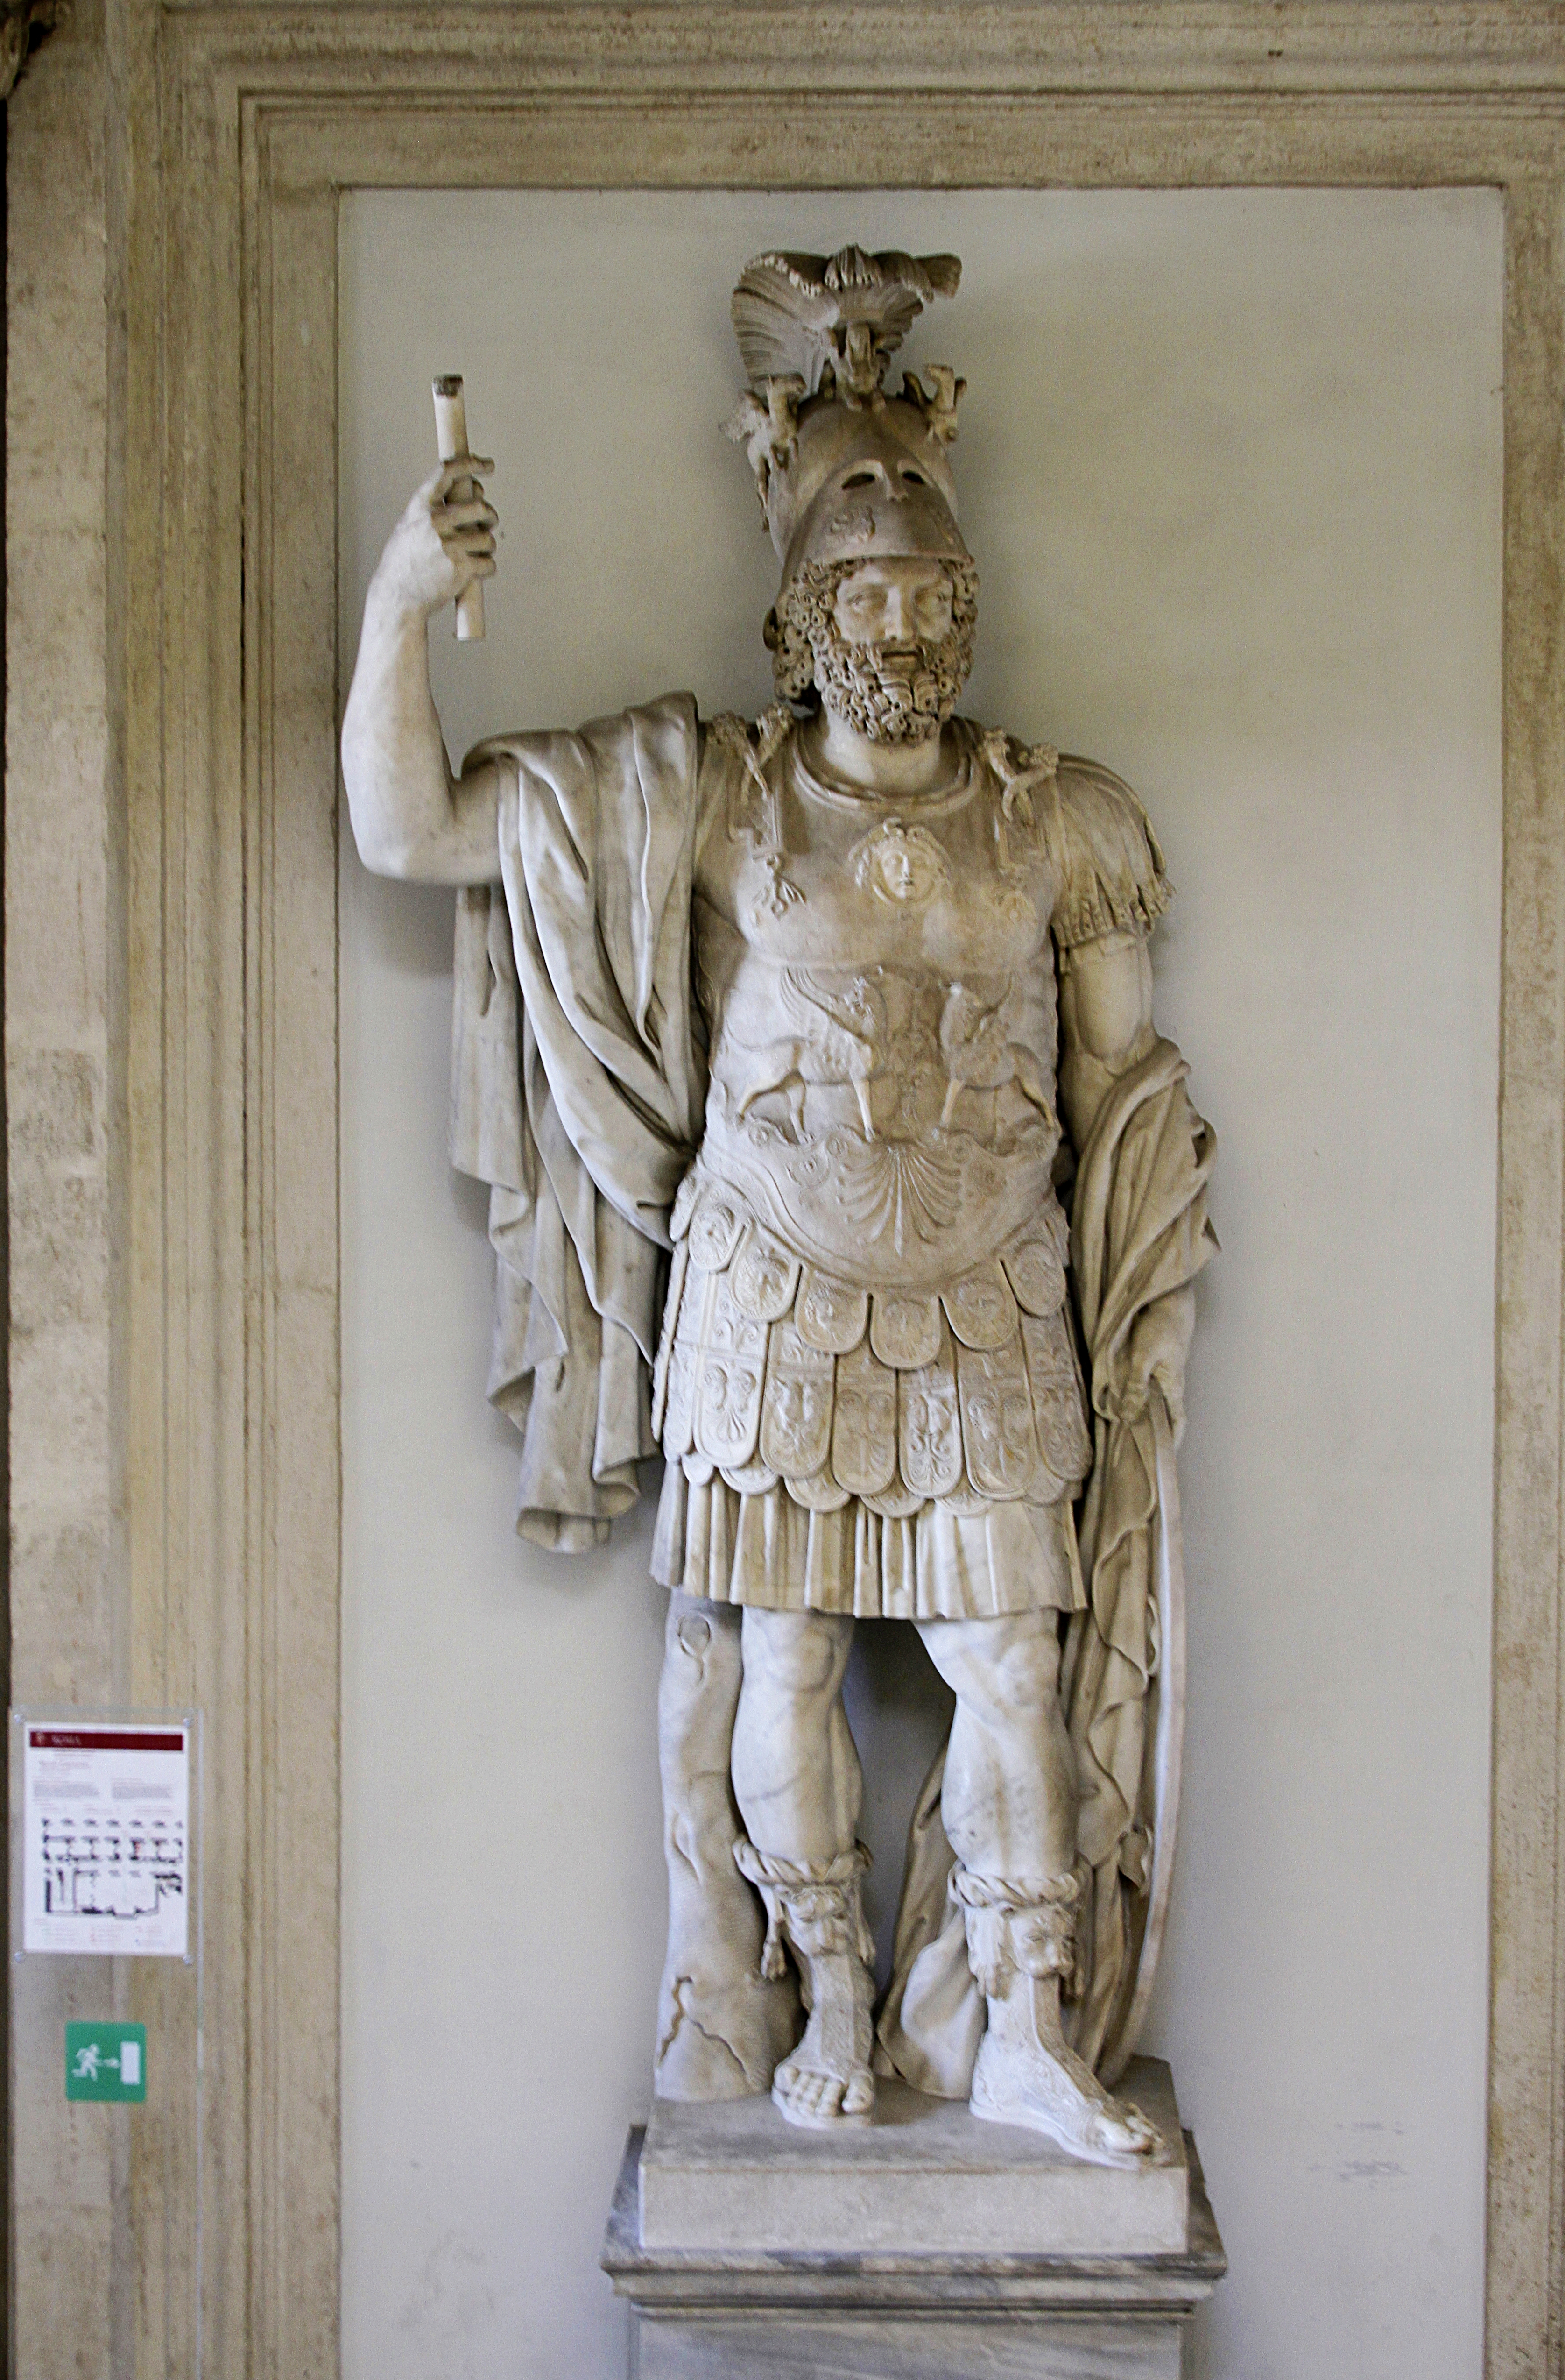 96503d0f6ed Marble statue of Mars from the Forum of Nerva, wearing a plumed Corinthian  helmet and muscle cuirass, 2nd century AD